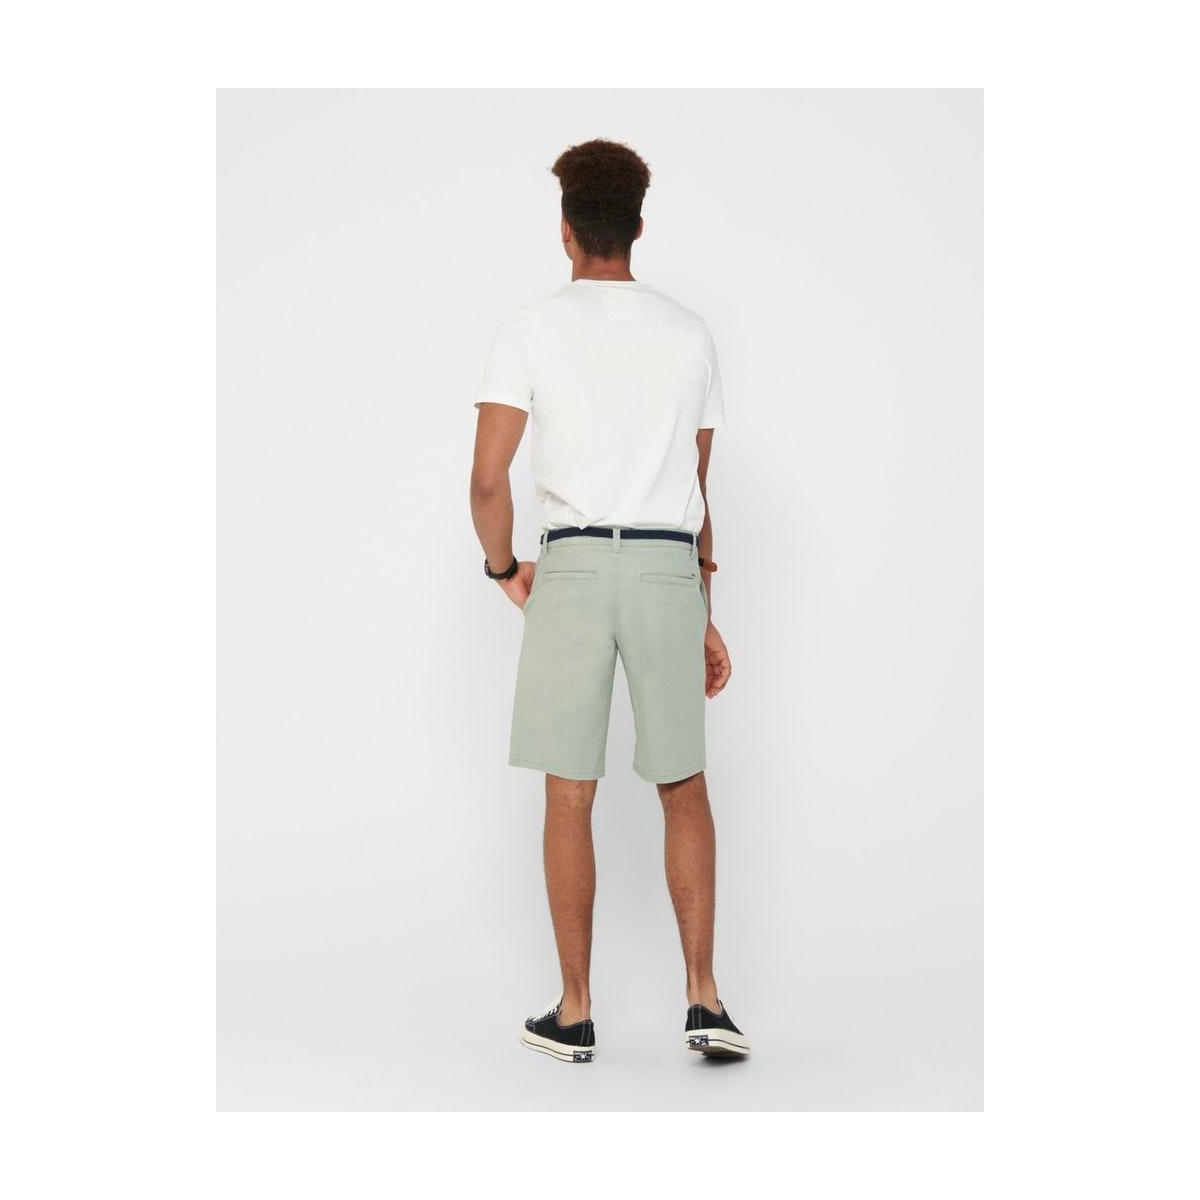 onswill chino shorts belt pk 6557 noos 22016557 only & sons korte broek seagrass